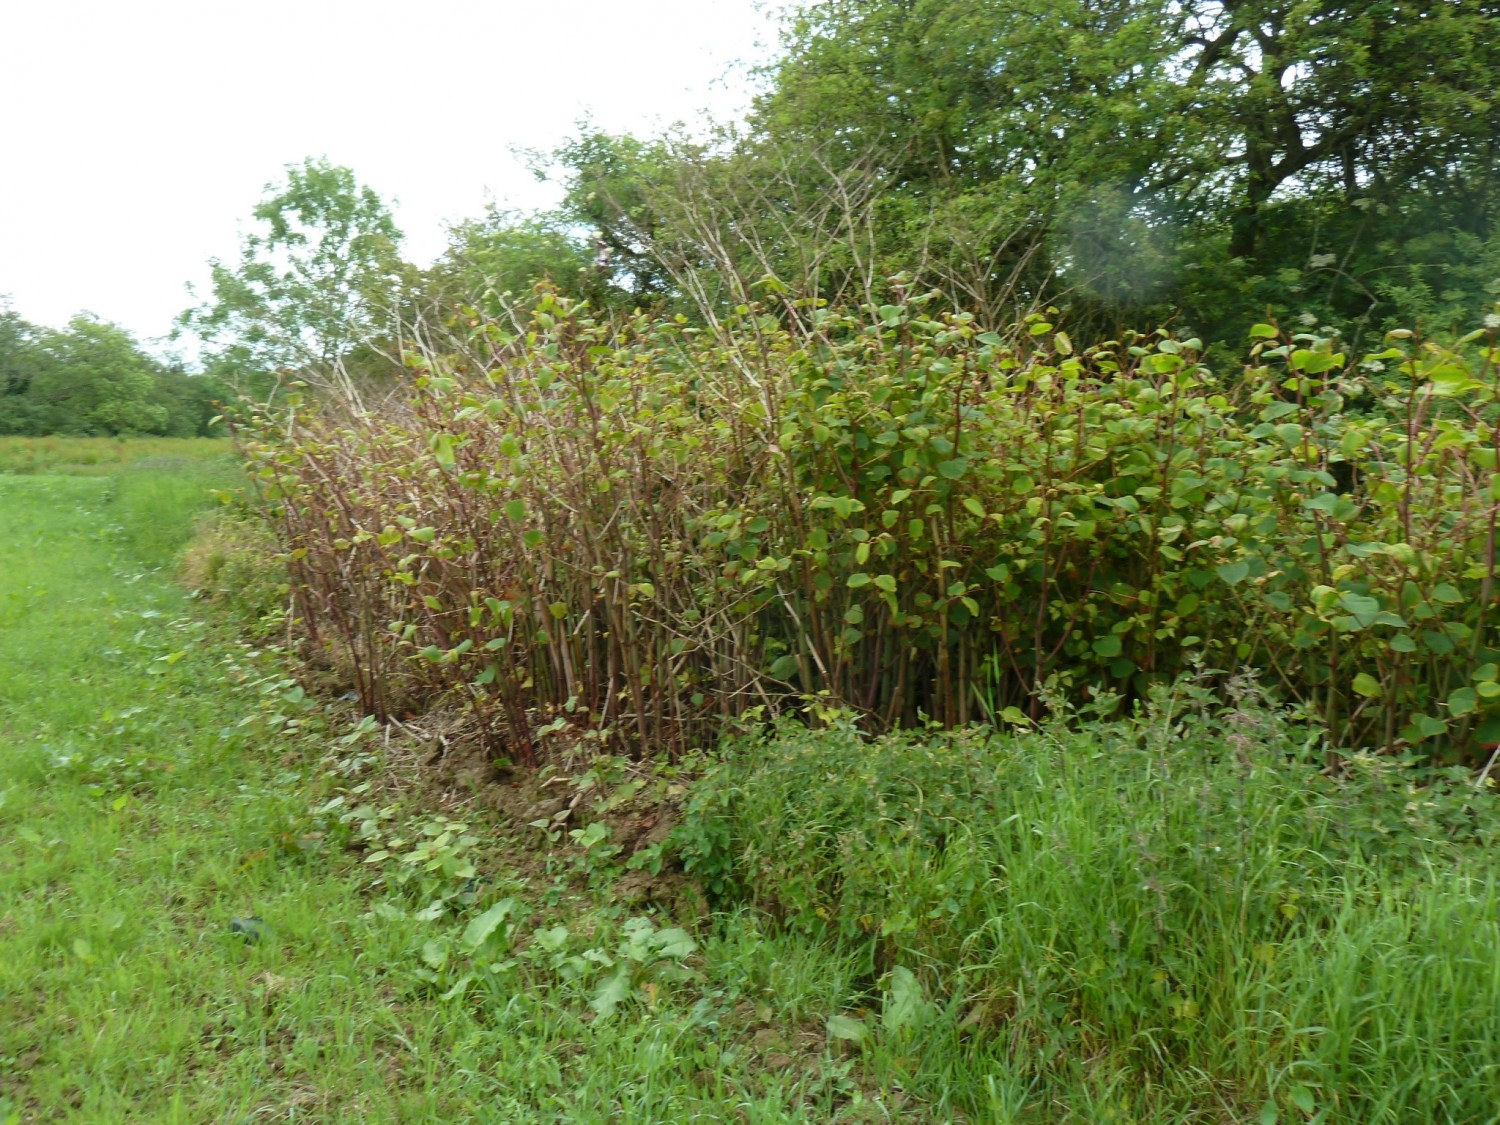 Japanese Knotweed on the Scrase Stream